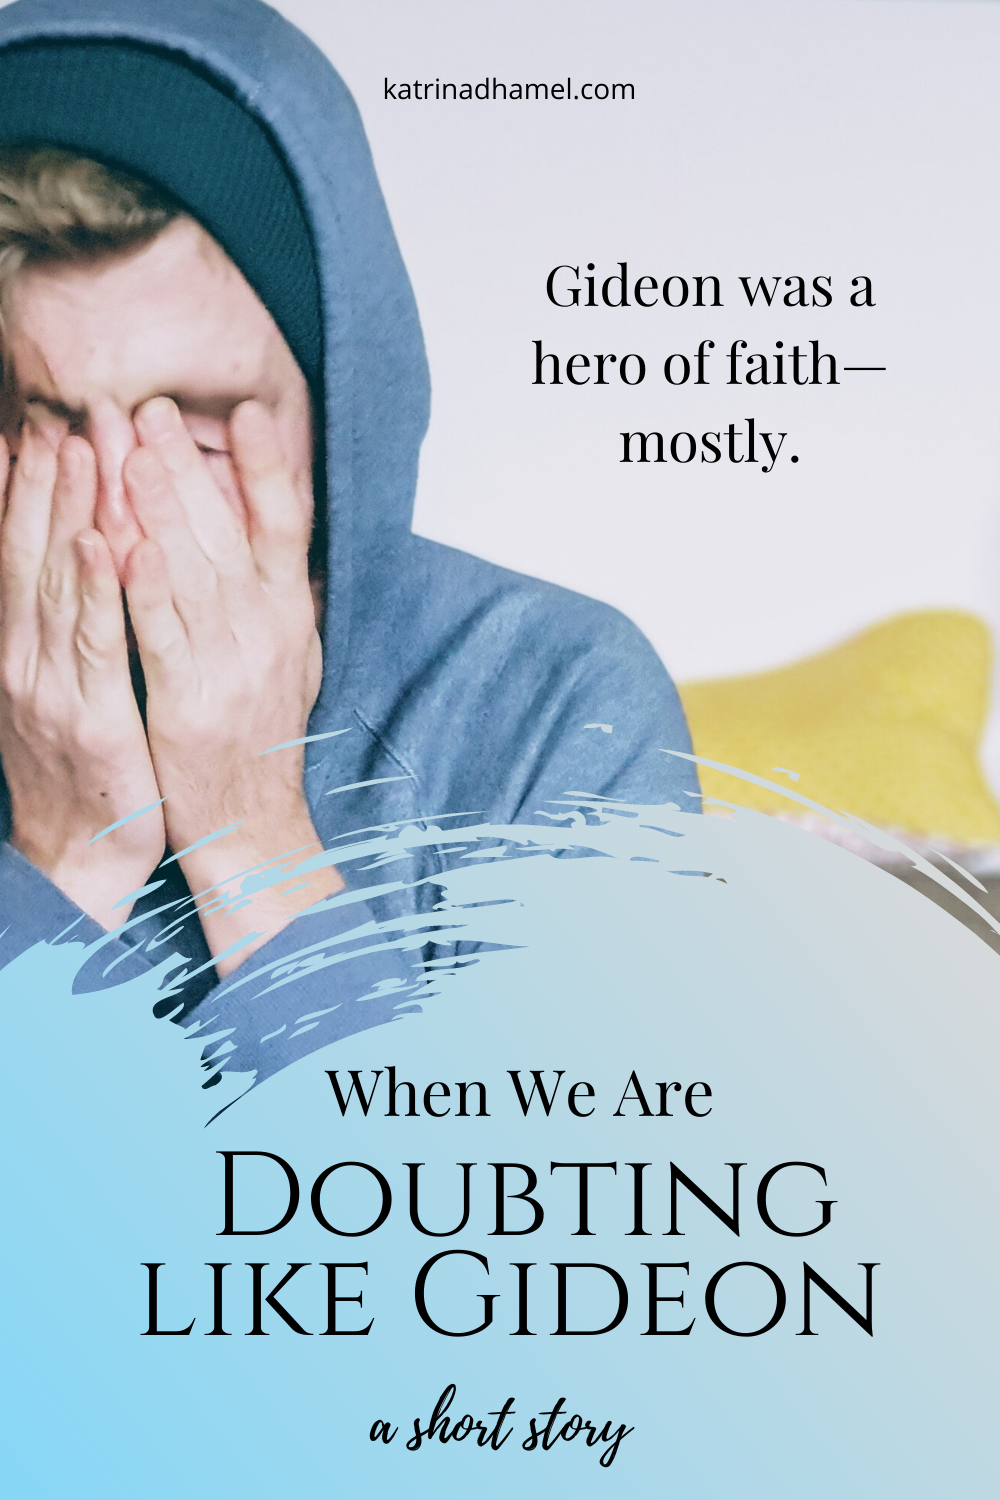 A young man wearing a blue hood as his face in his palms and the text reads 'When we are doubting like Gideon, a biblical short story'